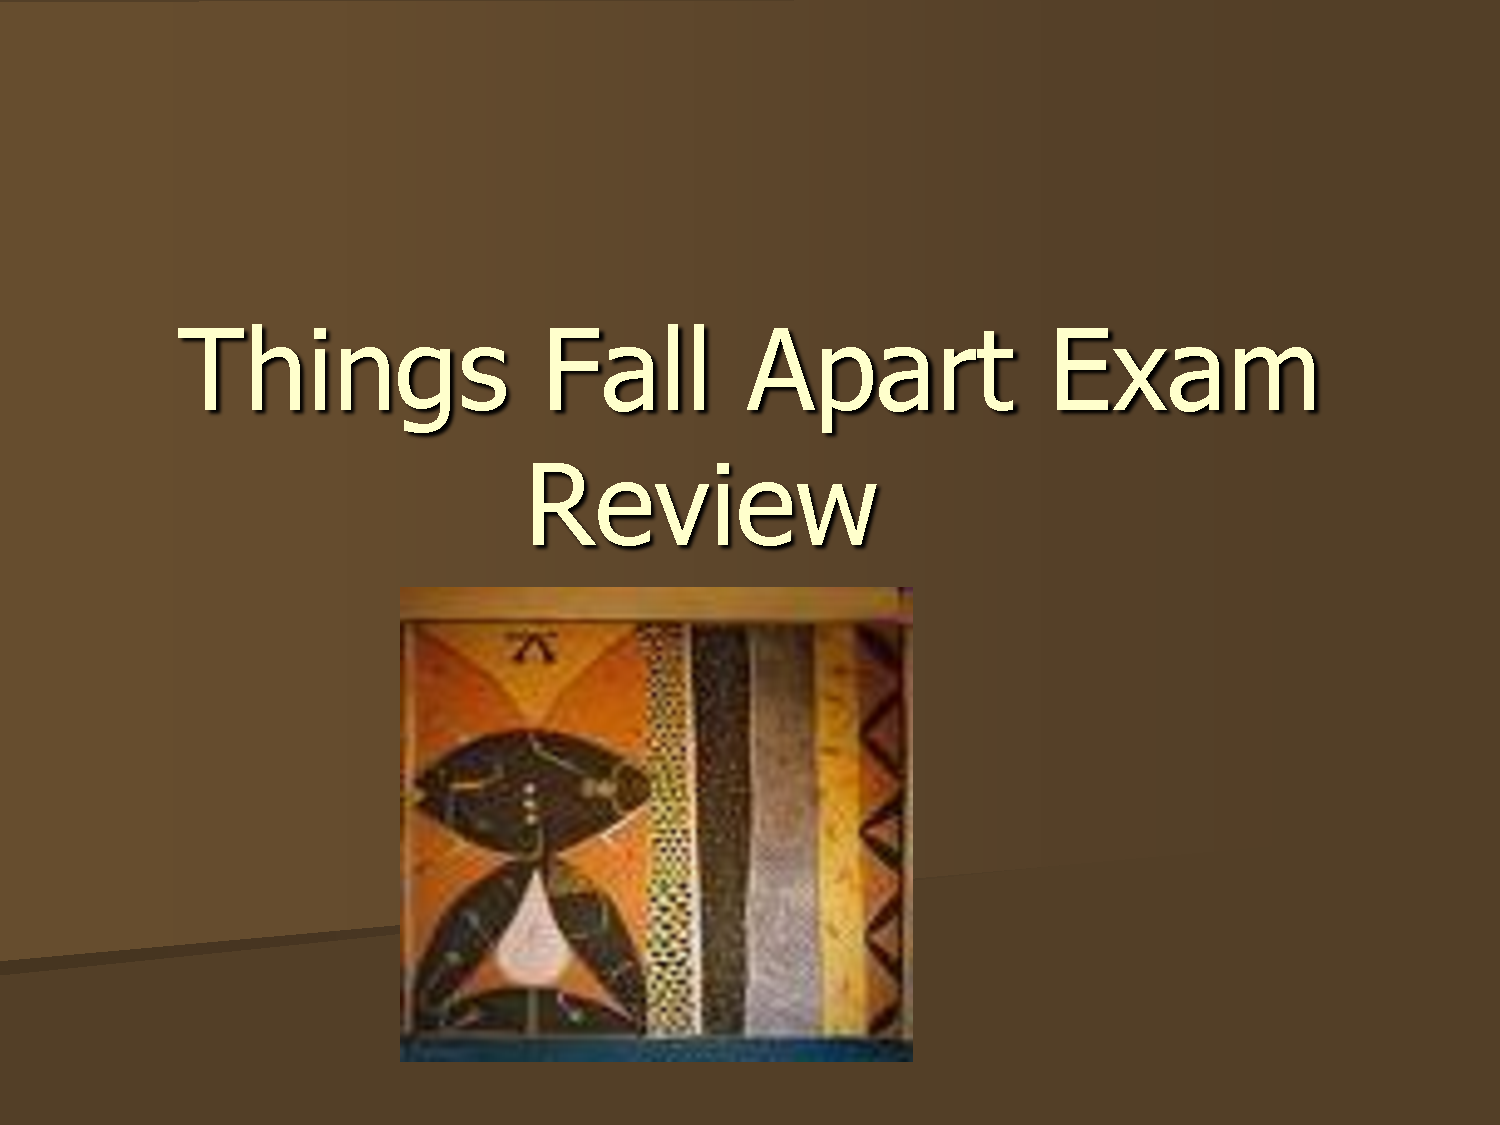 term papers on things fall apart Essay things fall apart by chinua achebe a) describe in detail your  impression of okonkwo's character having read part one of the novel b) what is.